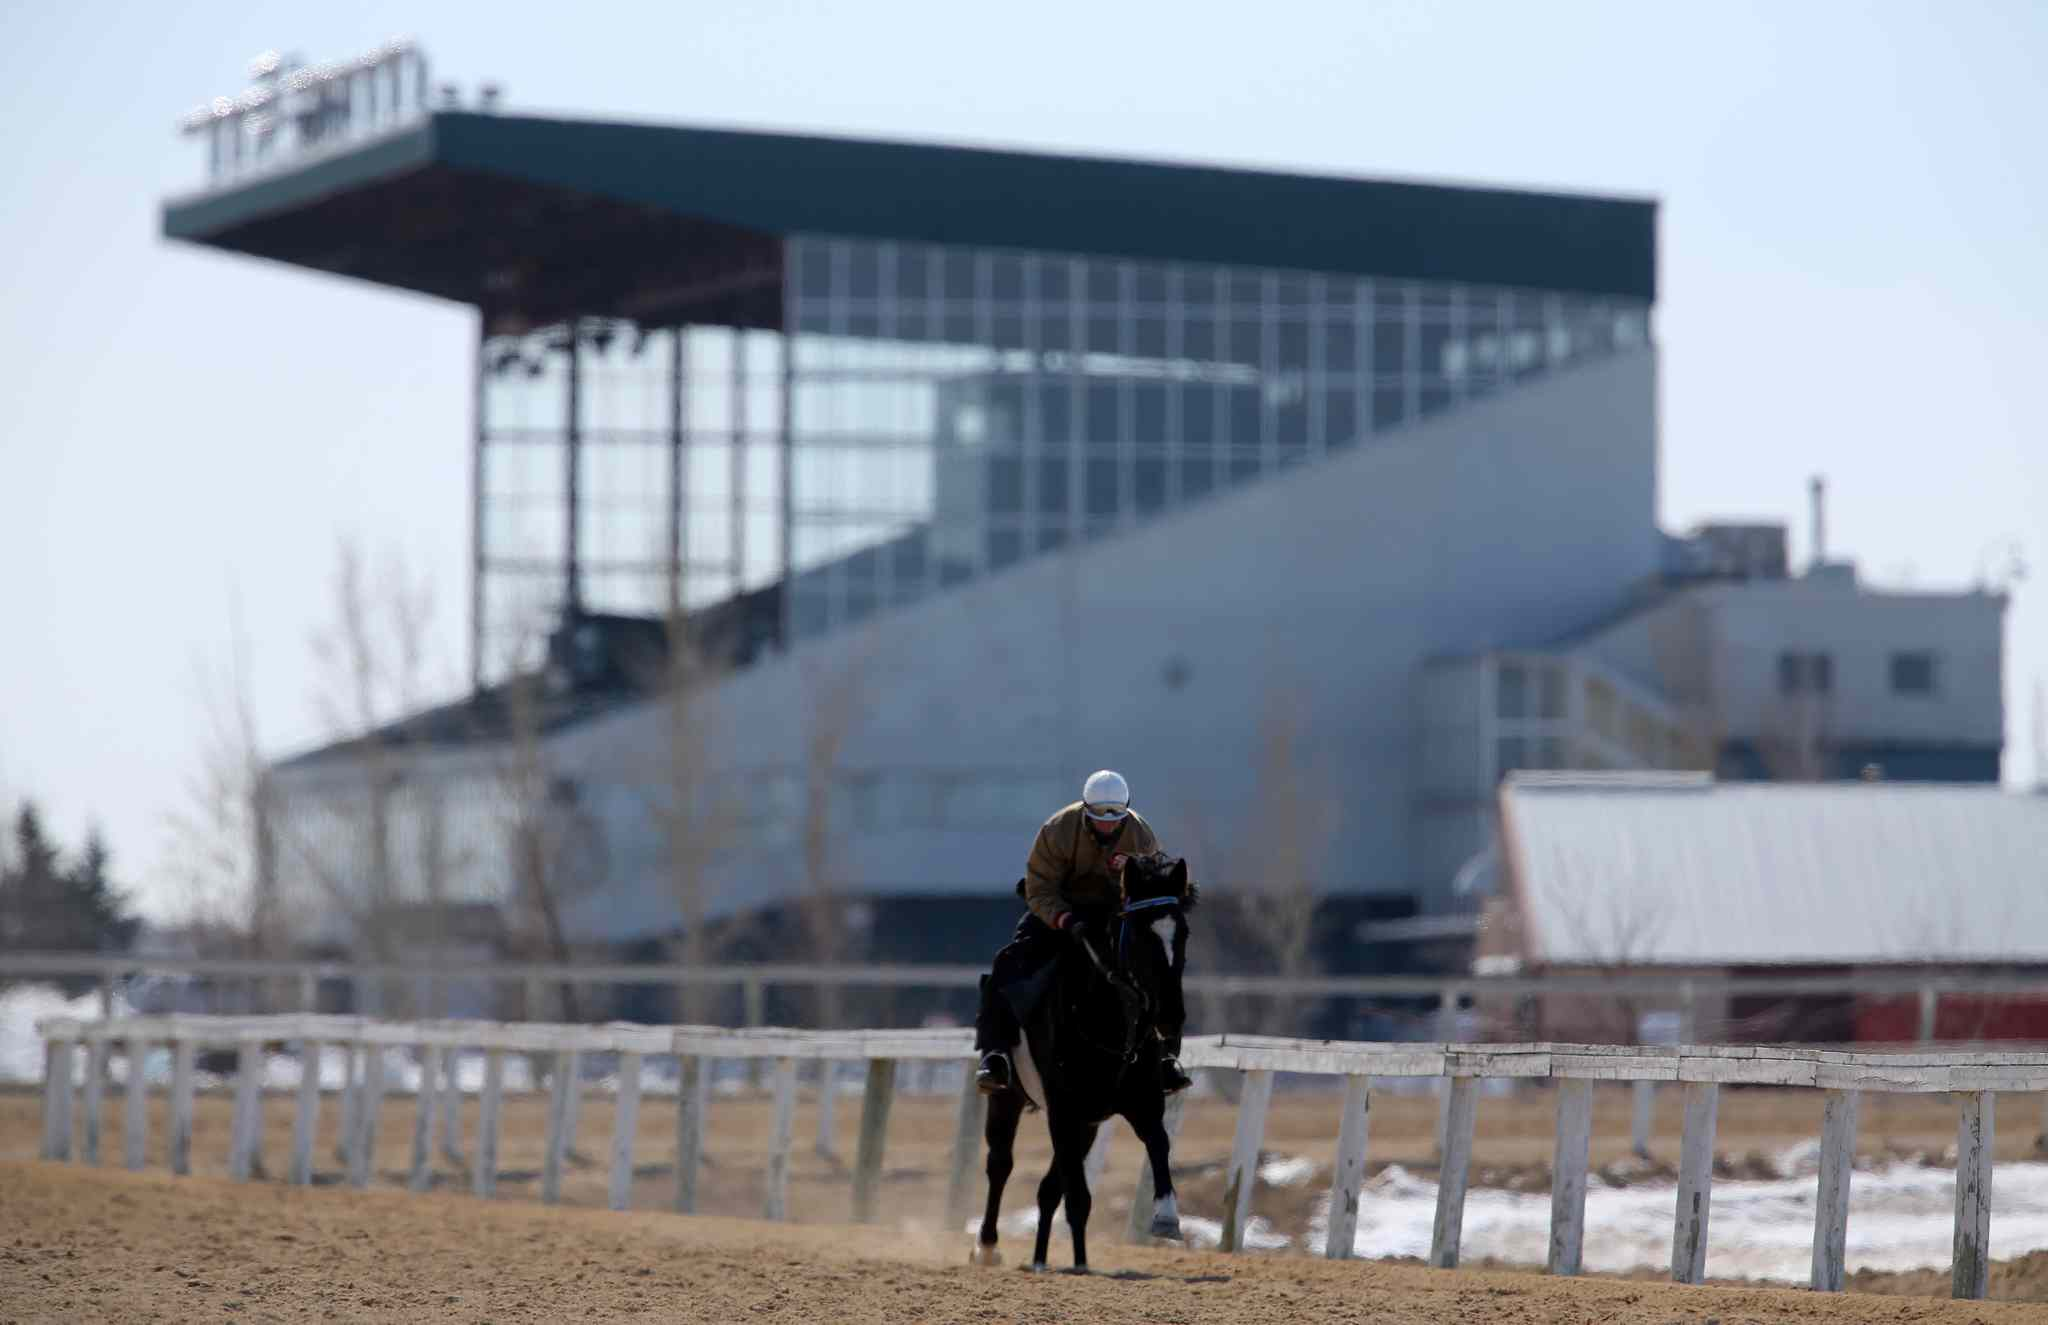 With today's agreement, the government is providing a financial bridge for MJC which will maintain sustainability for horse racing in the interim.